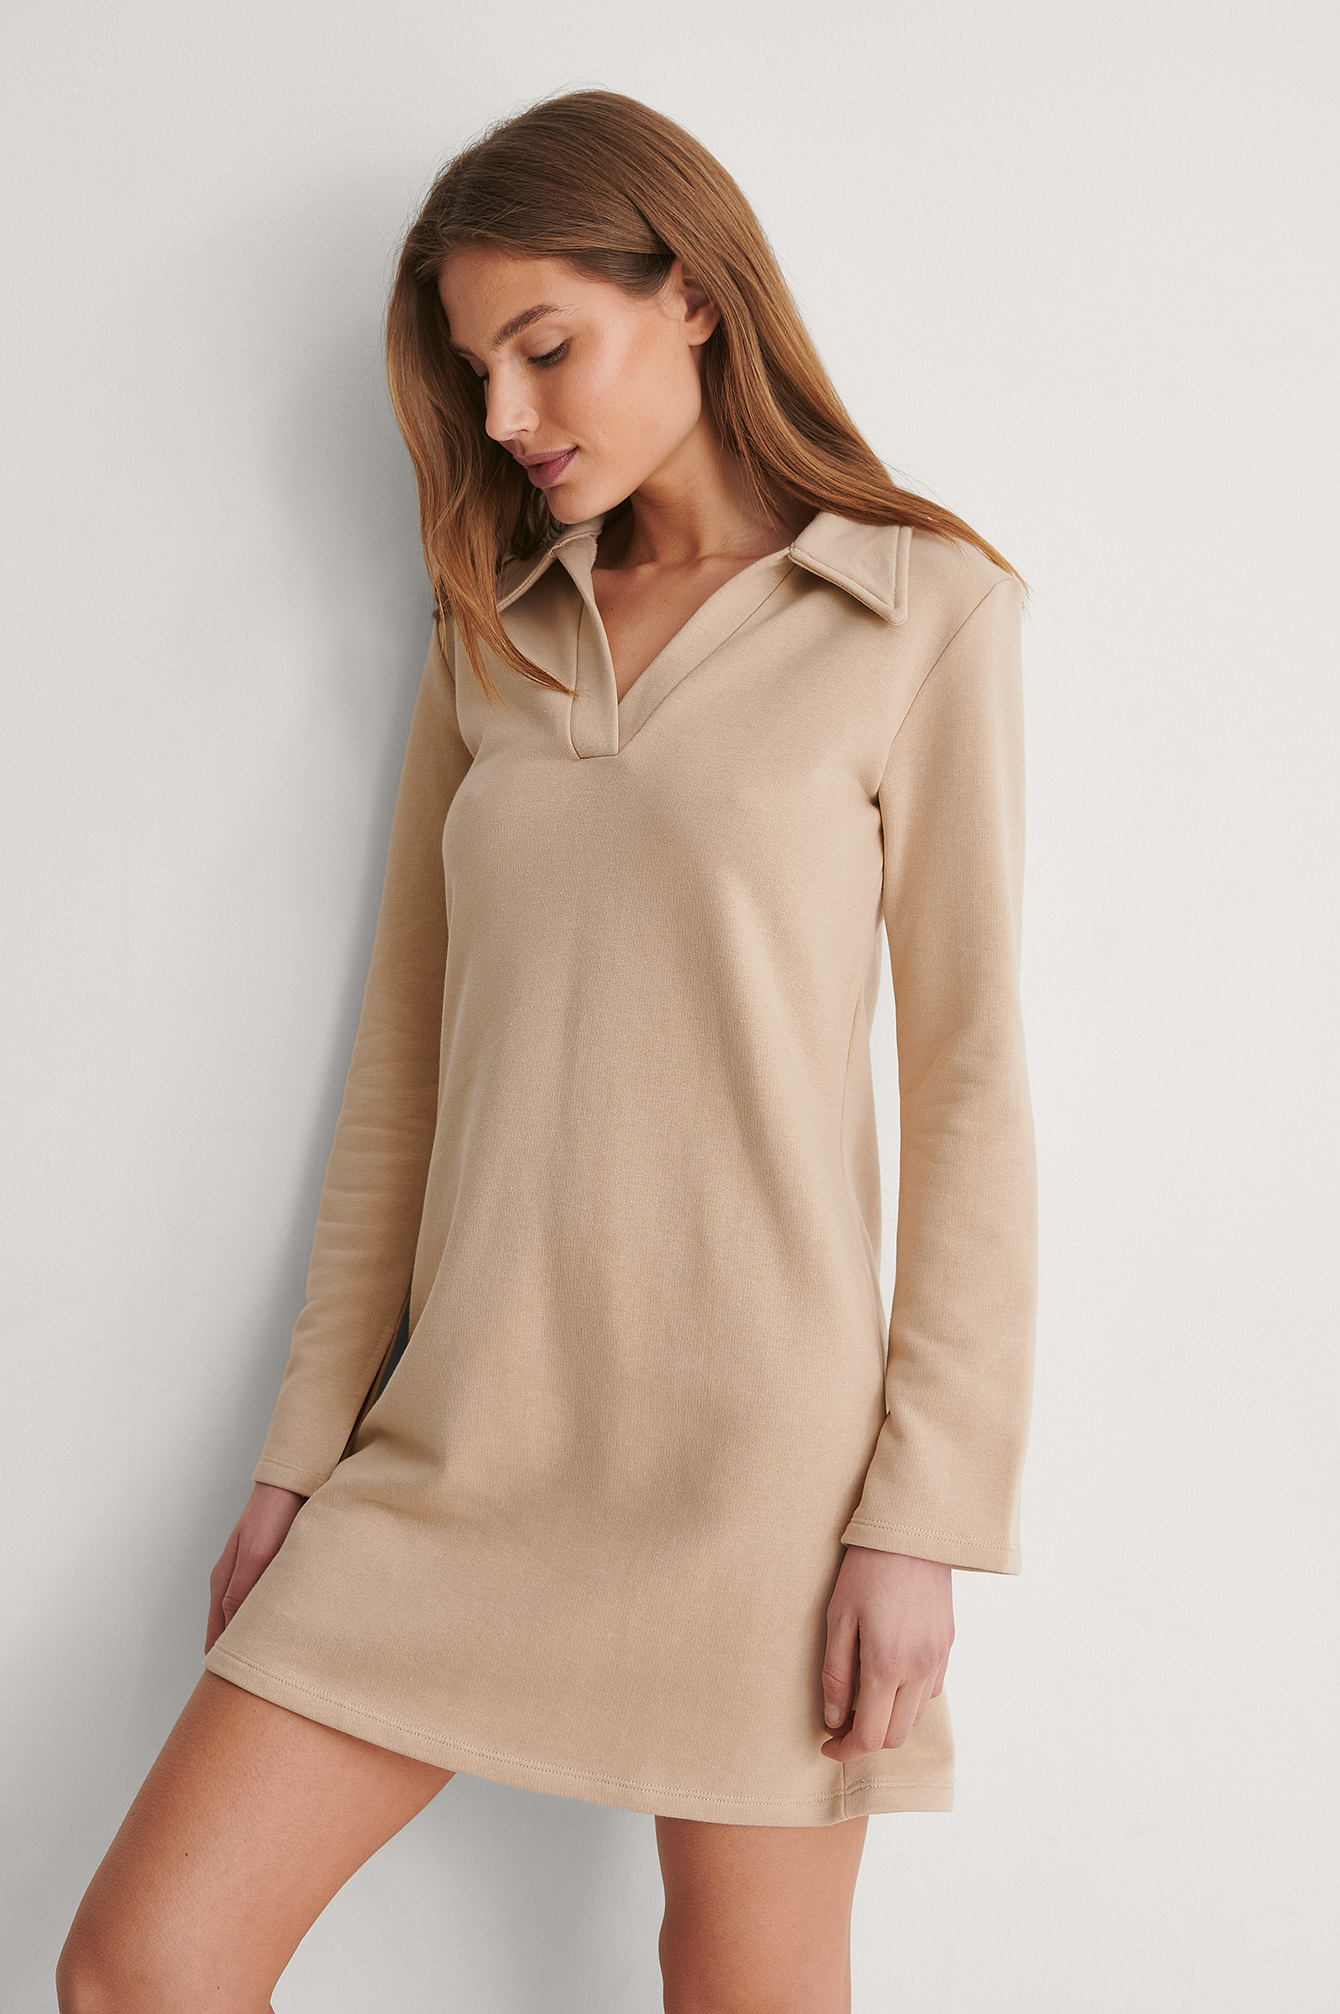 Beige V-Neck Collar Detail Dress